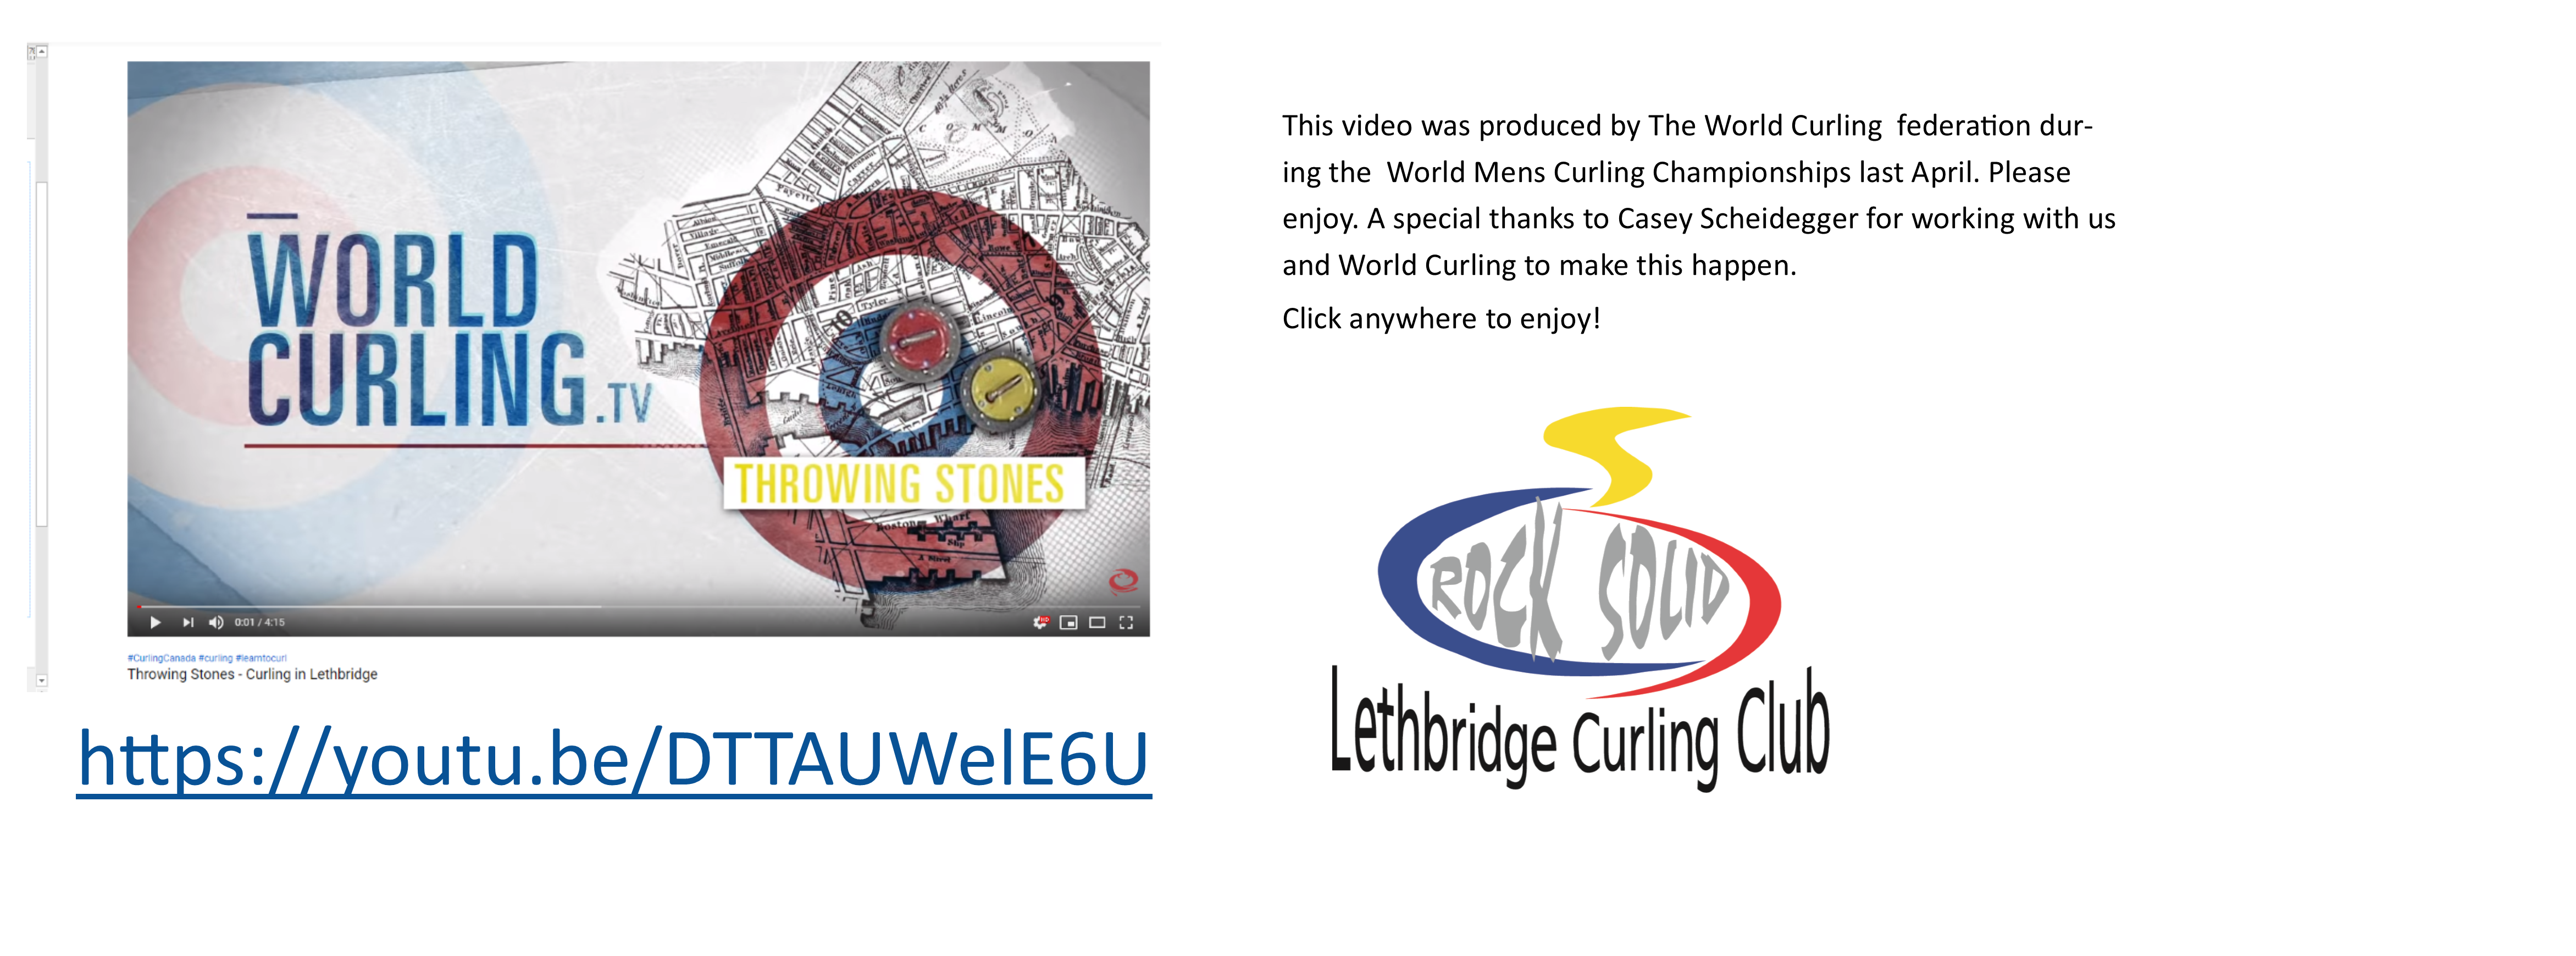 <div id=slideshow_title>Throwing Stones - World Curling TV</div> <br><div style='text-align: left; font-size: 18px;'></div>